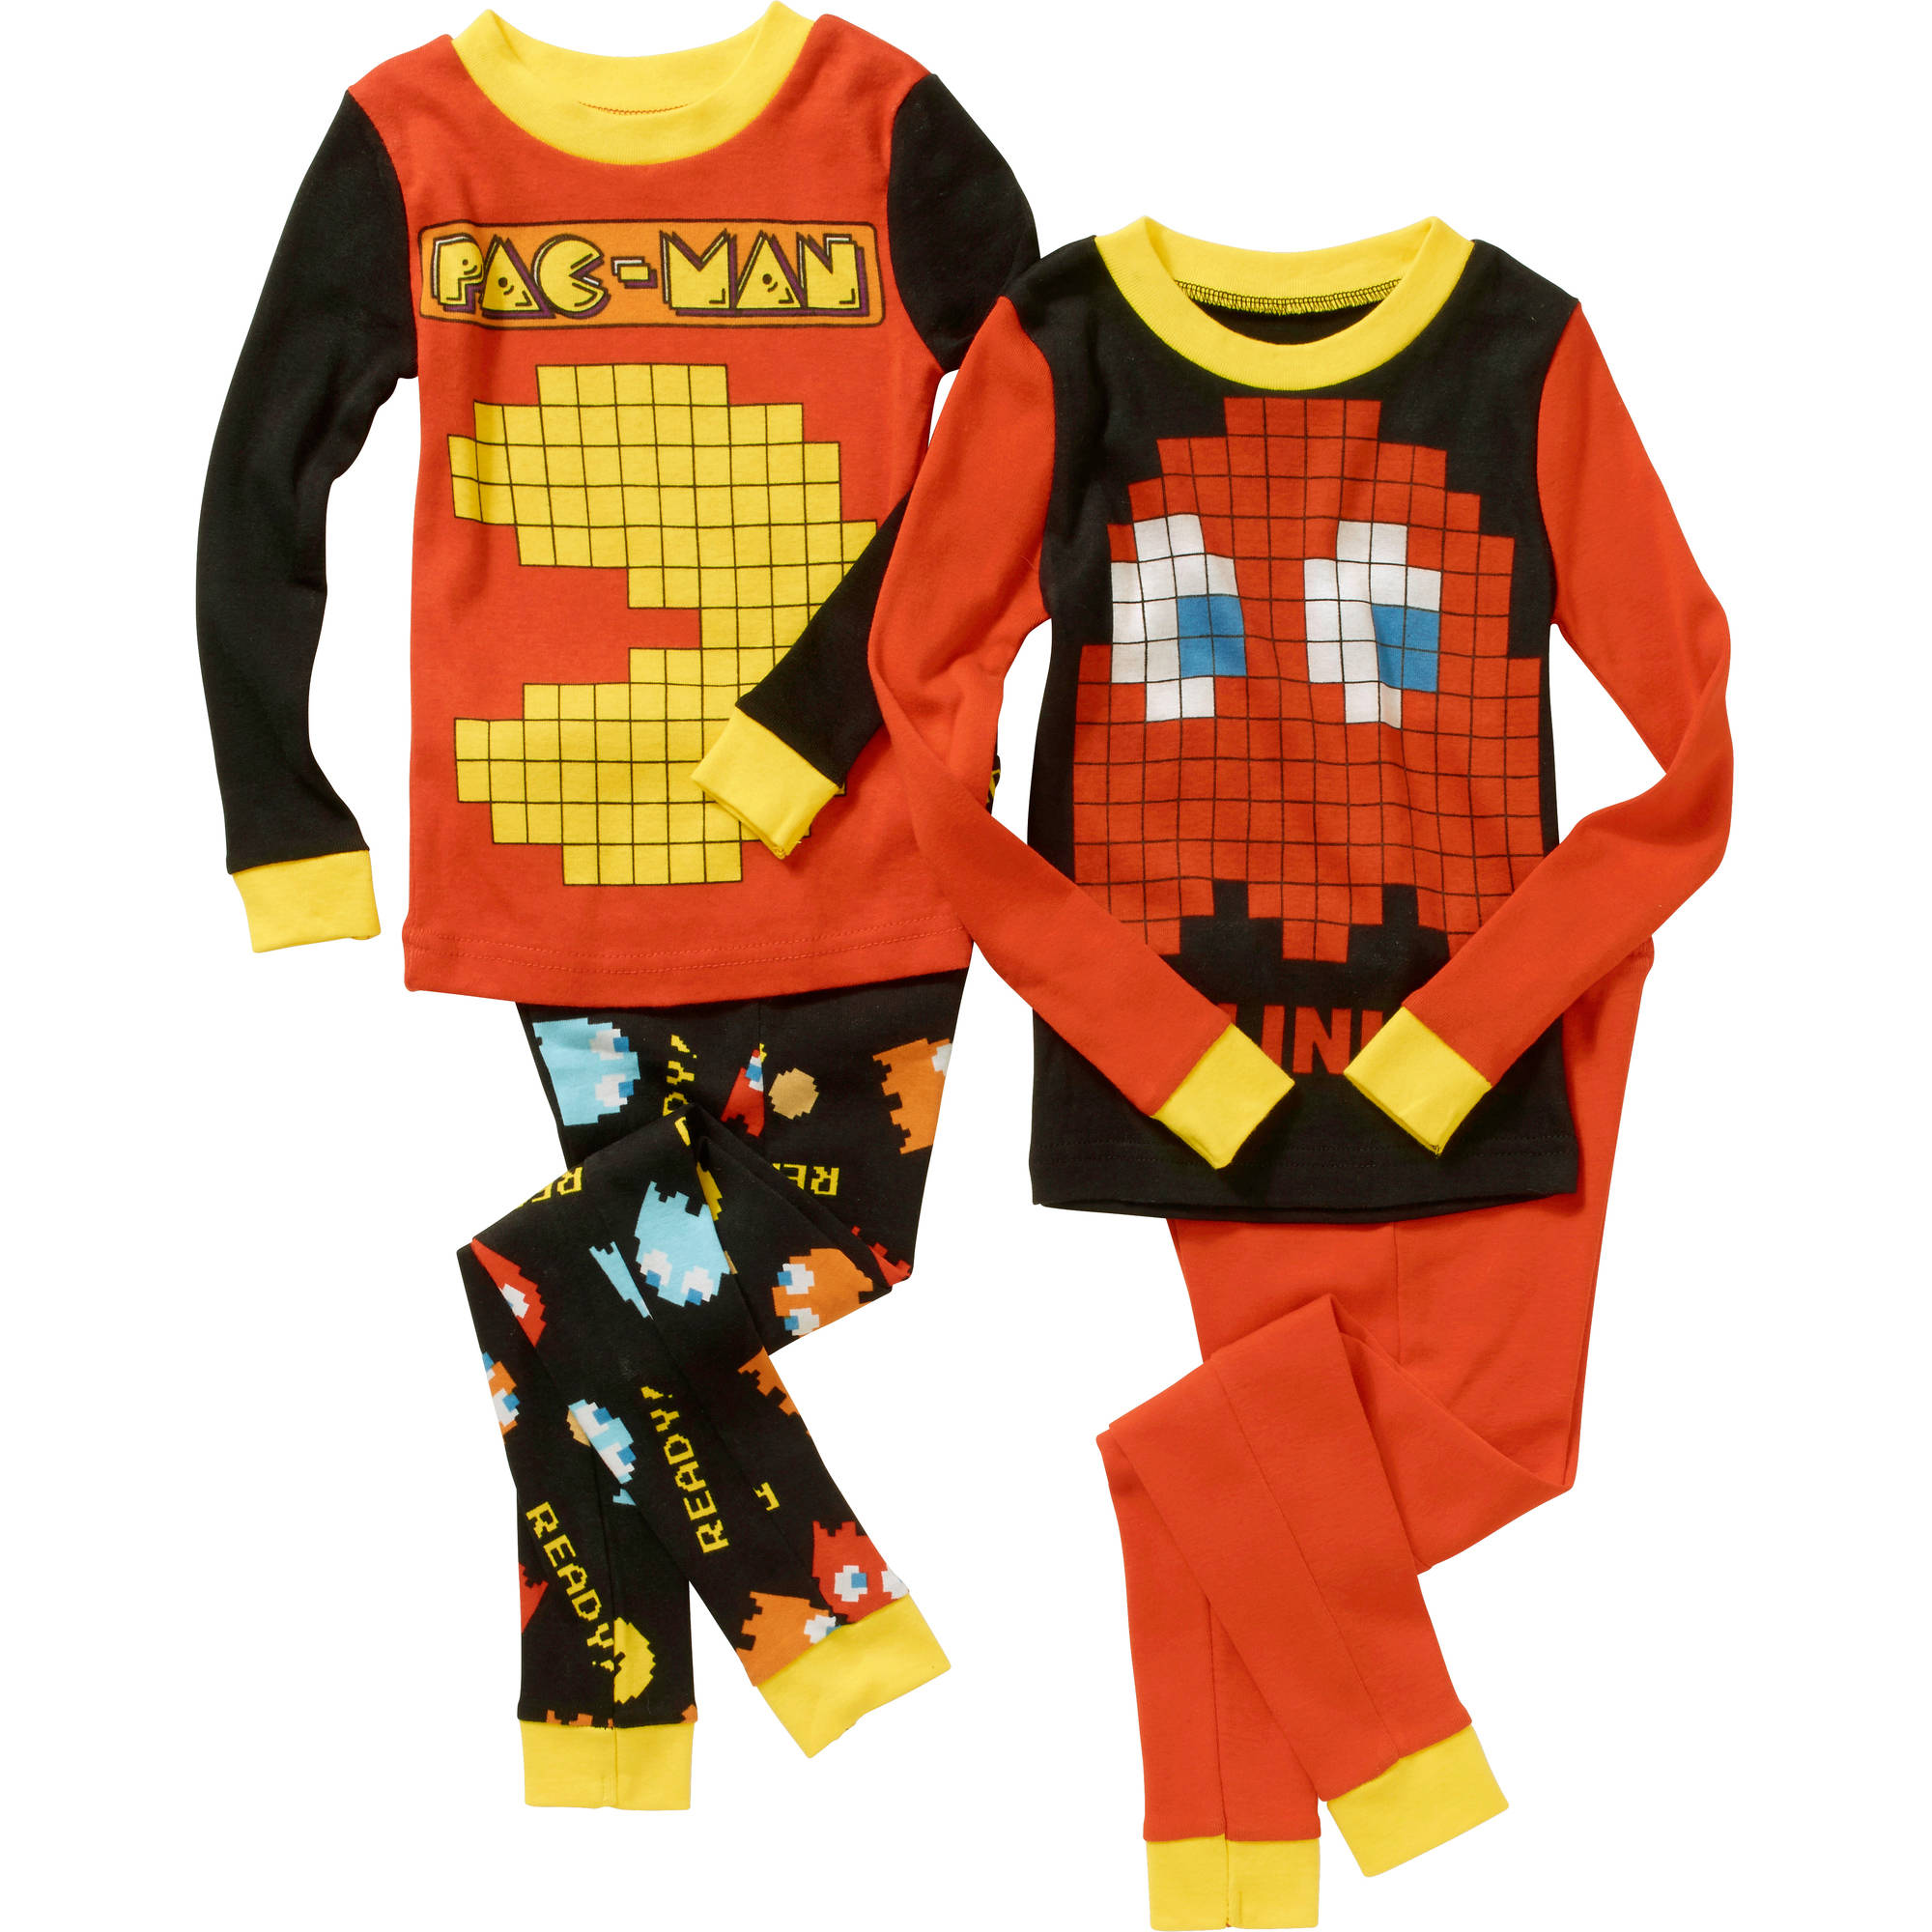 Pacman Toddler Boy Cotton Tight Fit Paja